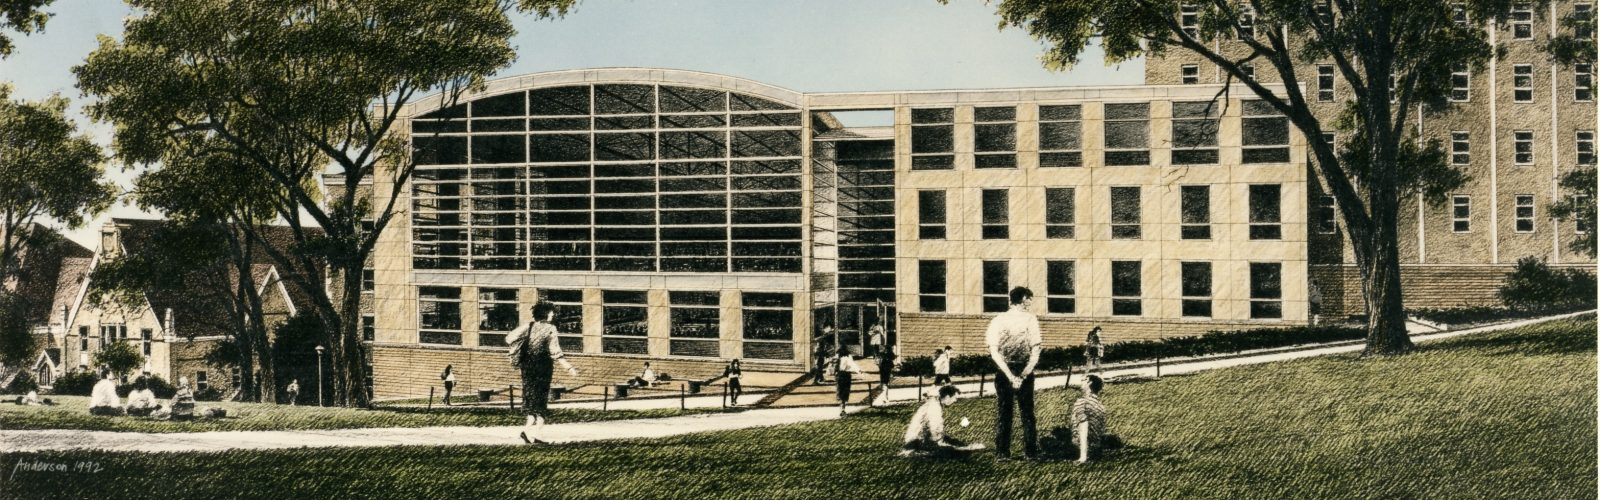 the law building in 1990s